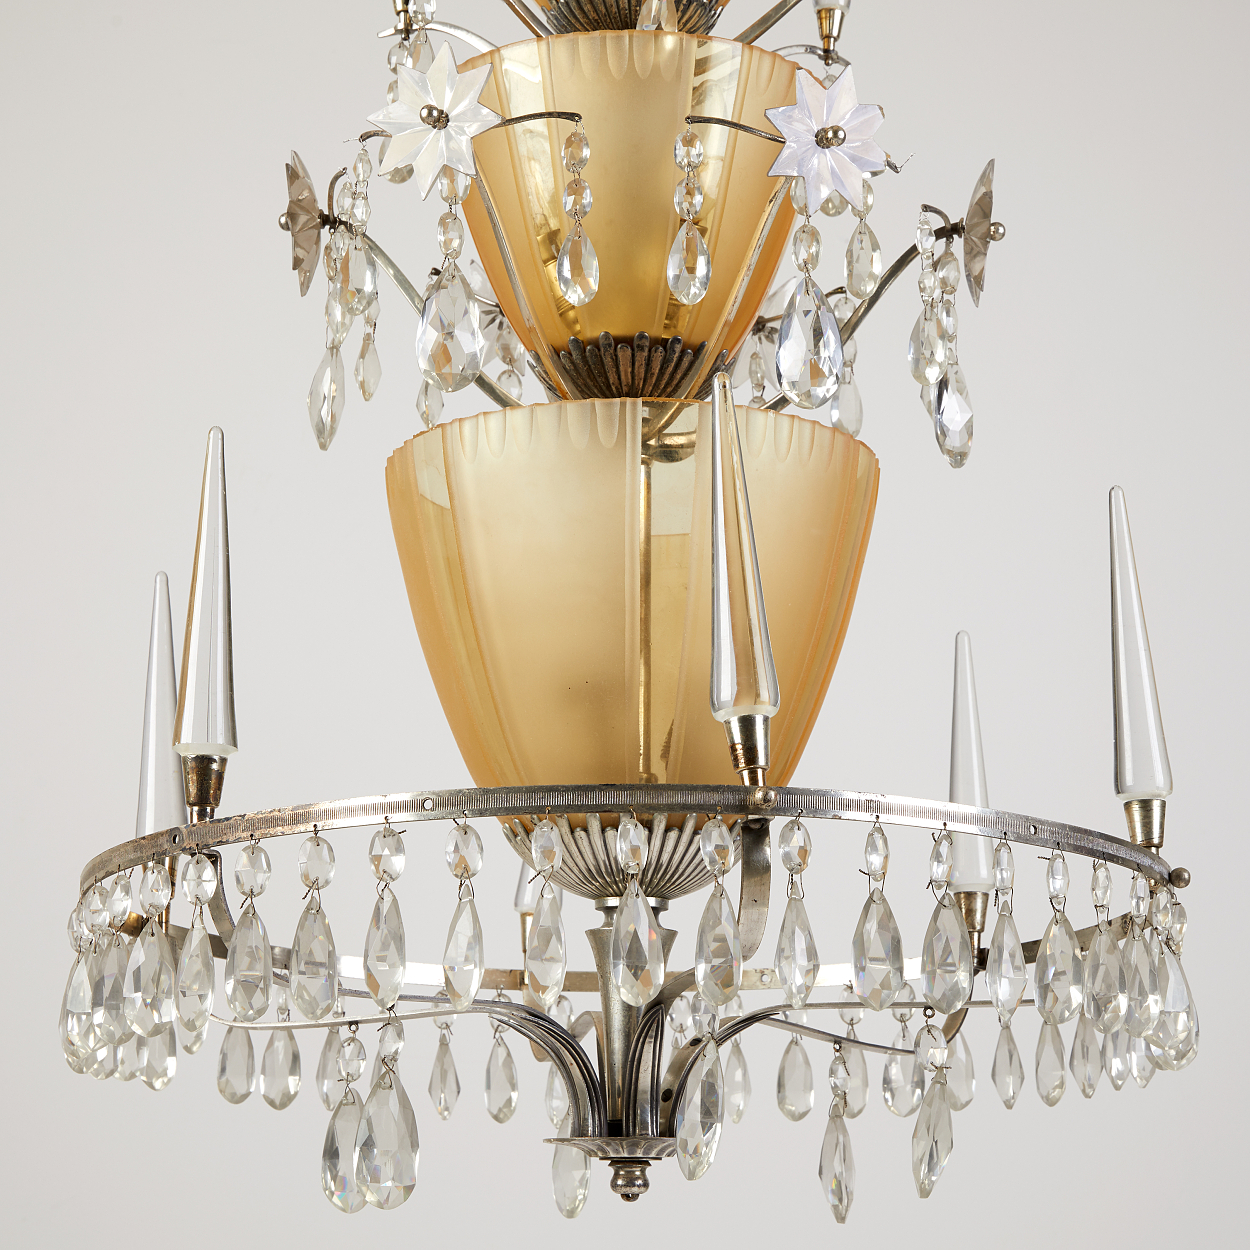 Elis Bergh, attributed to, a pair of chandeliers